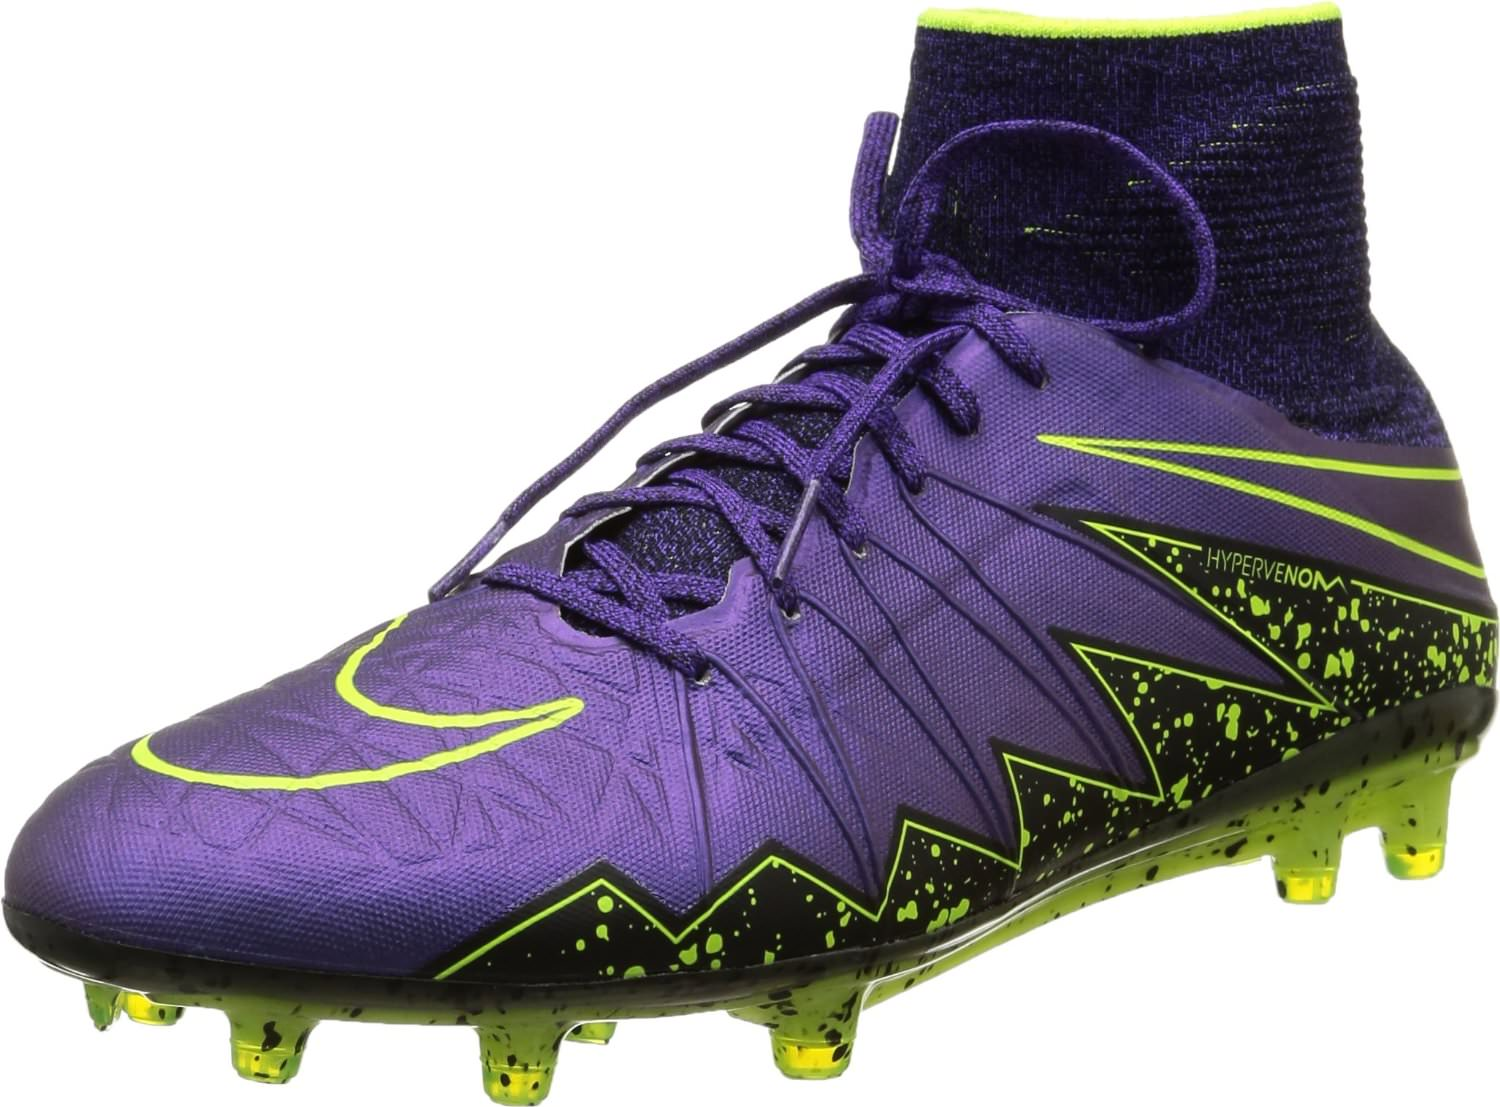 nike hypervenom phantom ii images football boots guru. Black Bedroom Furniture Sets. Home Design Ideas